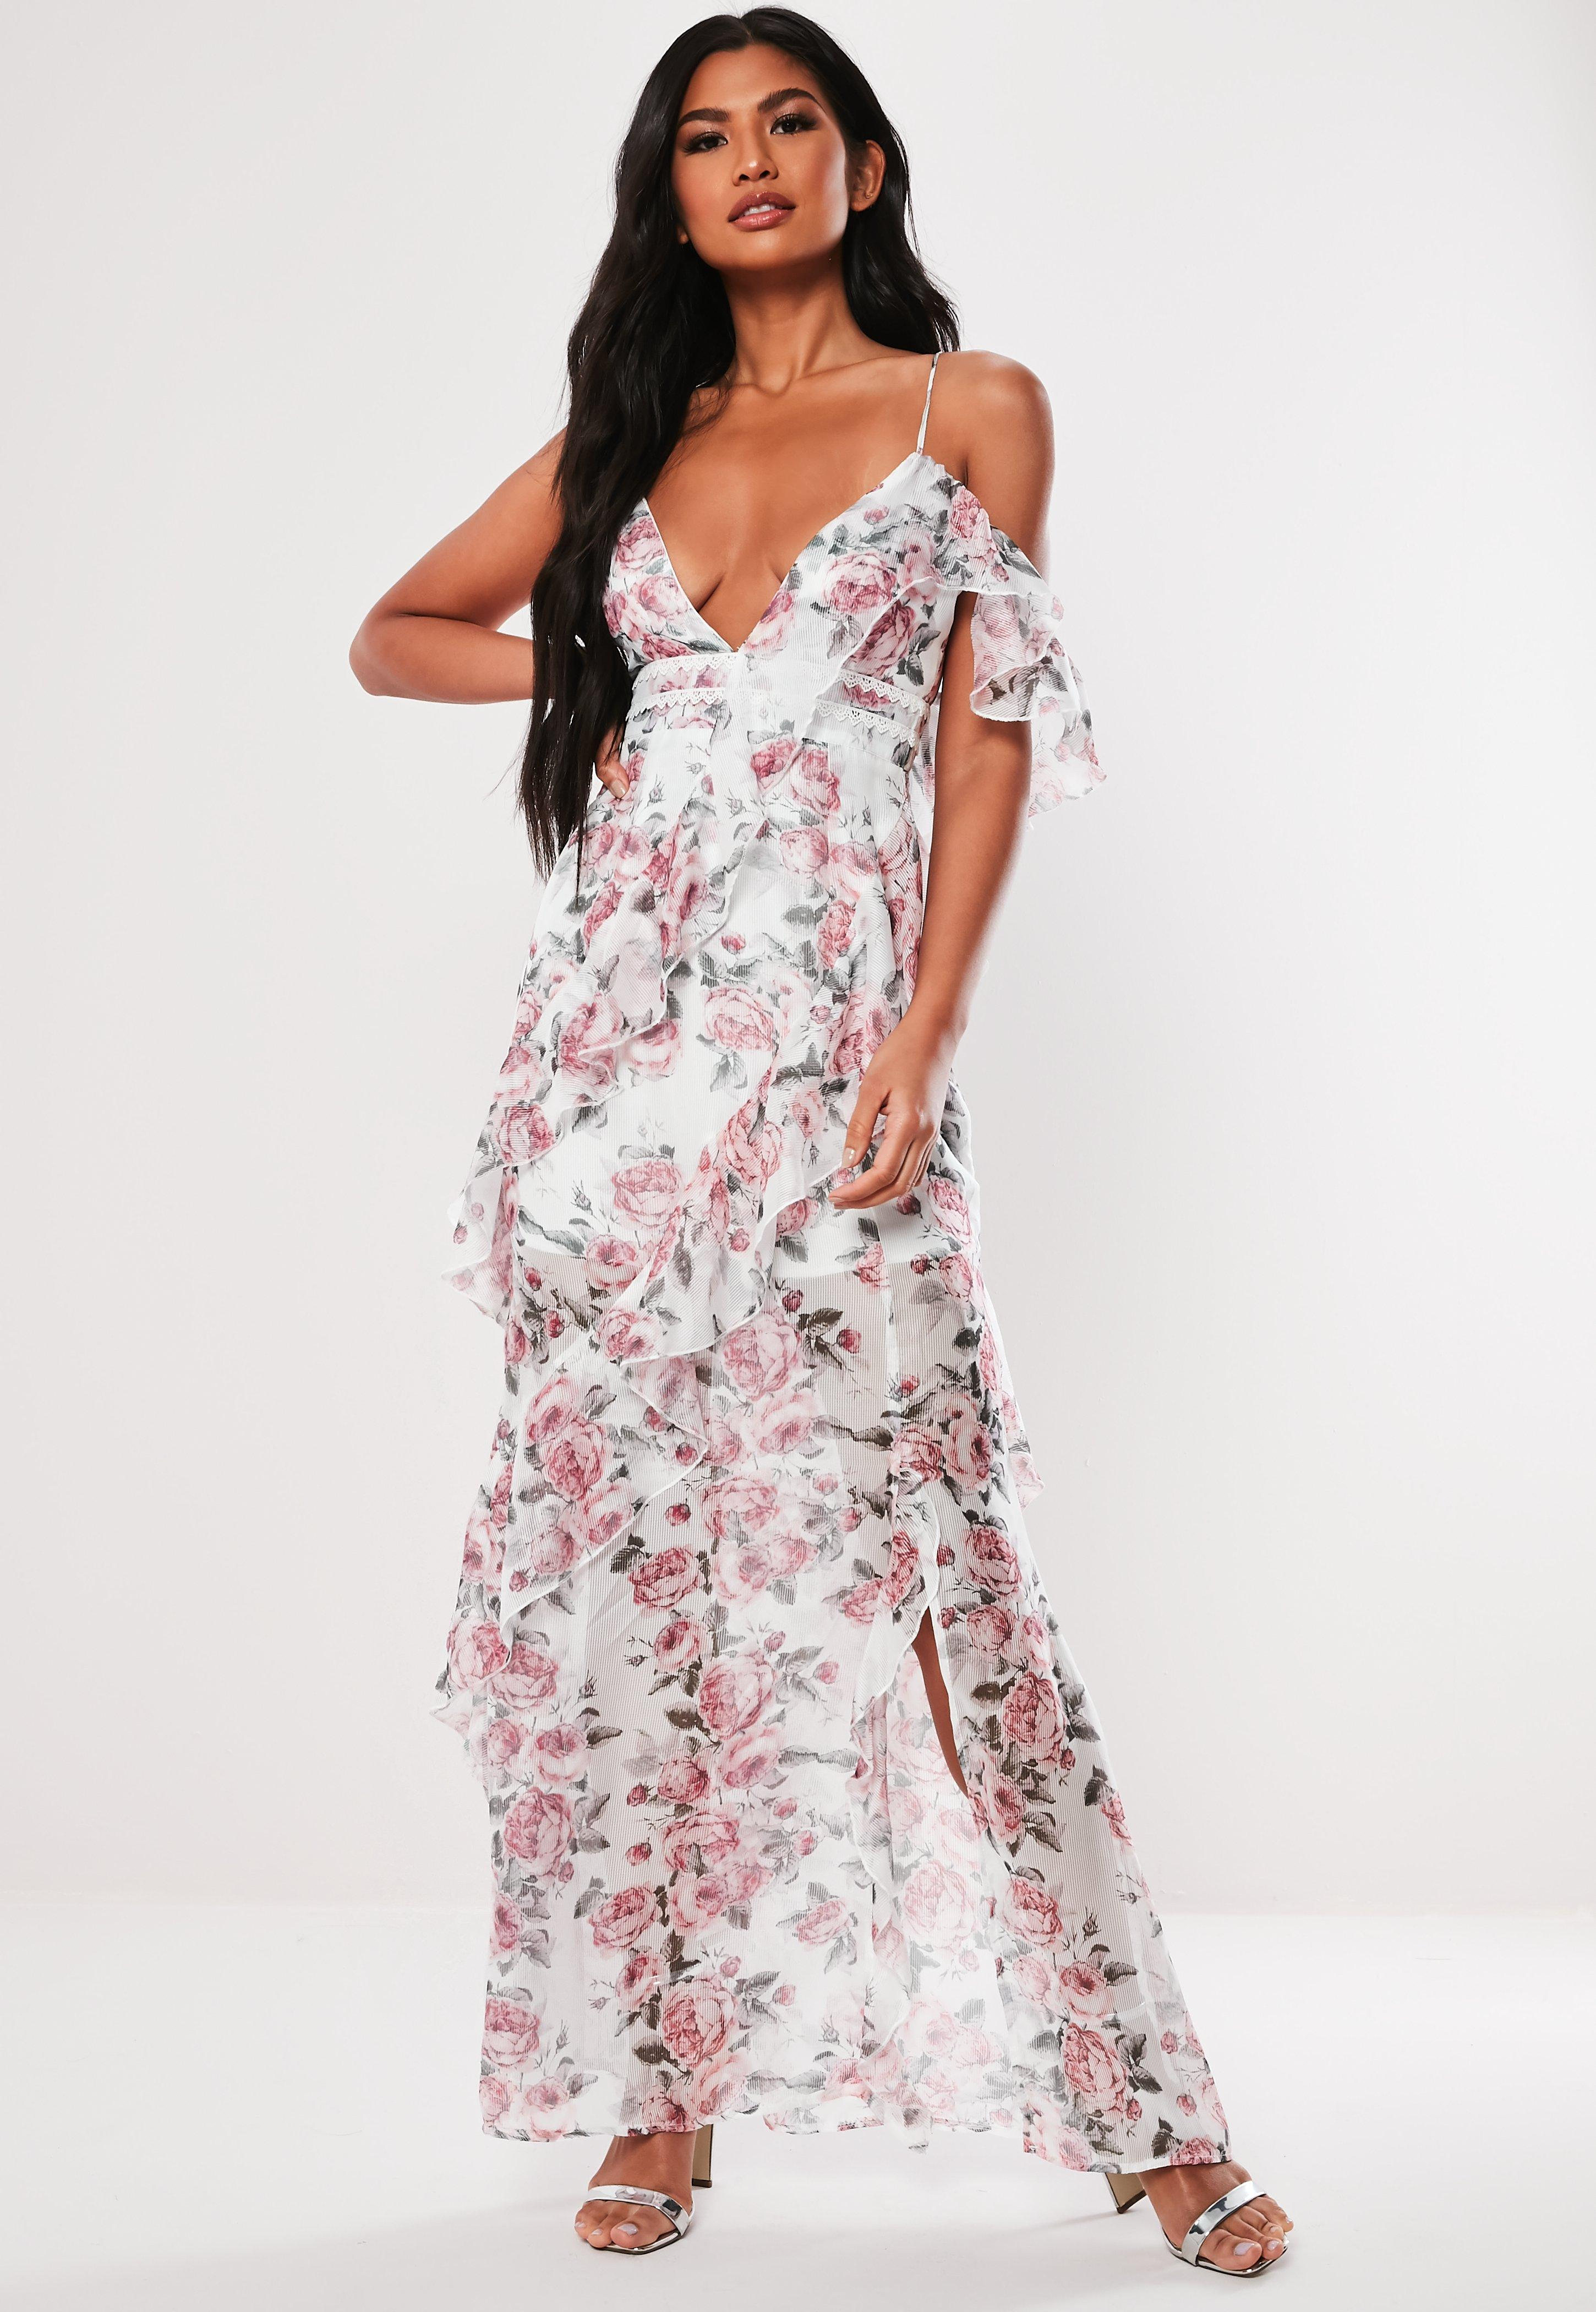 667a330672 Pink Floral Print Ruffle Maxi Dress | Missguided